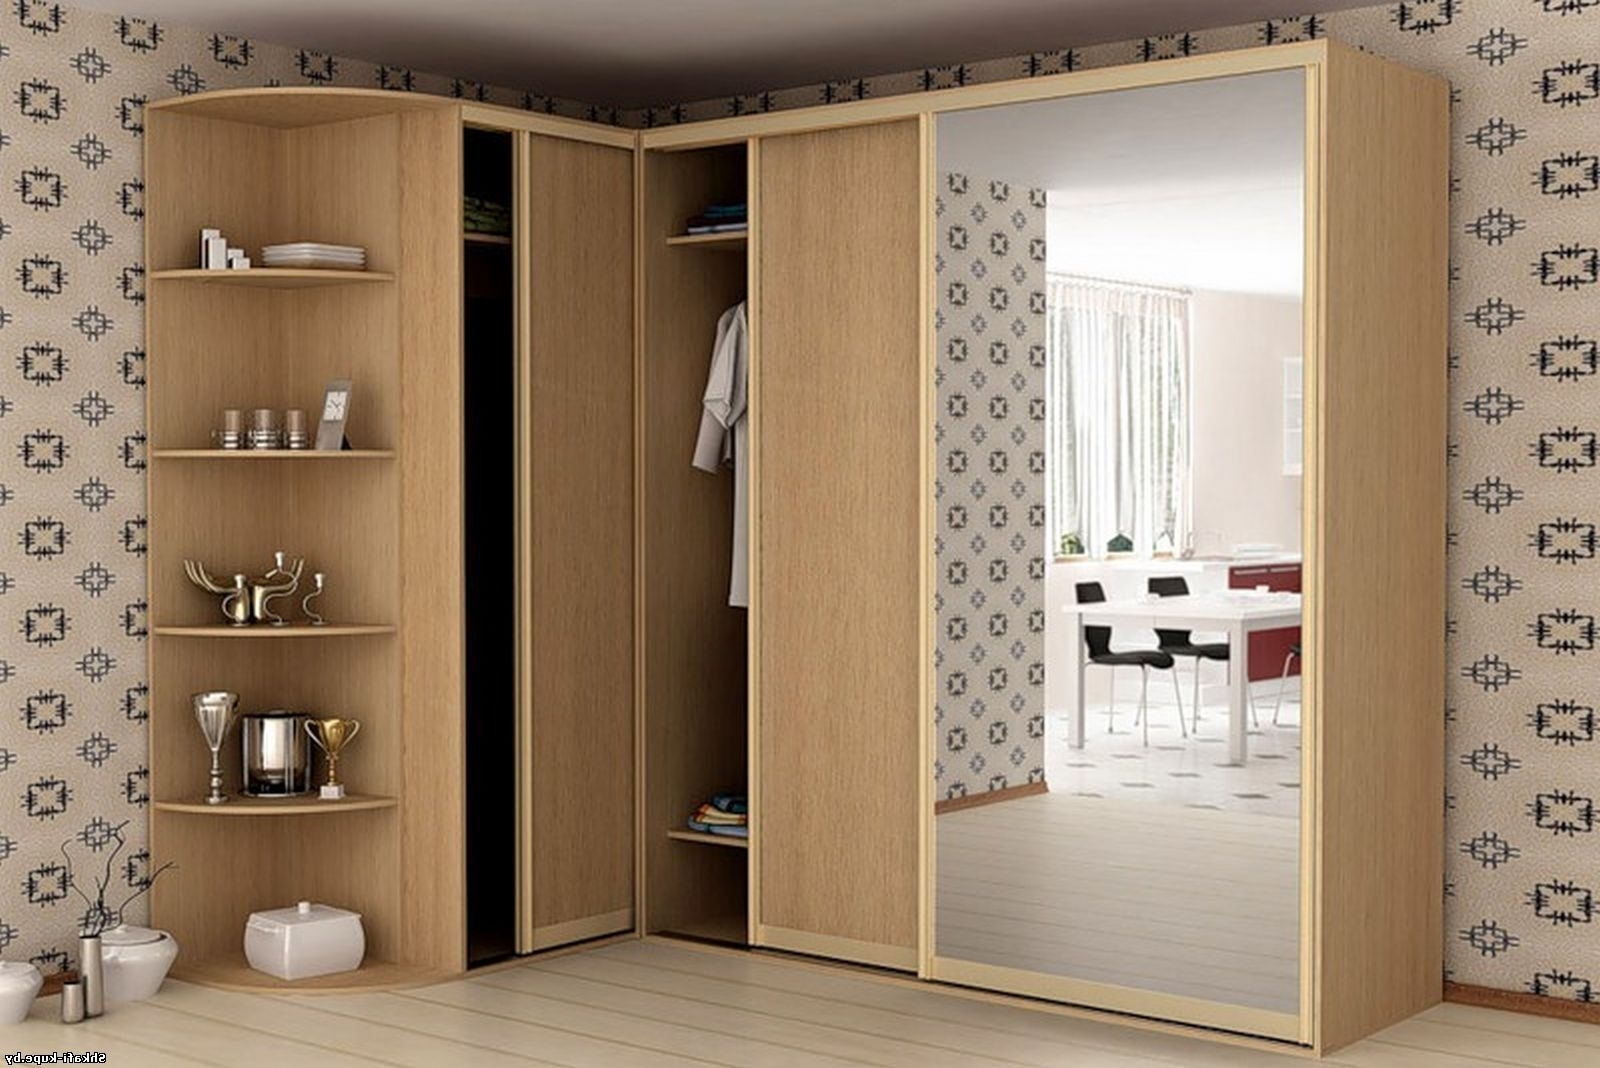 Corner Mirrored Wardrobes With Regard To 2017 Rustic Wooden Wardrobe Design With Sliding Door And Mirror Also (View 14 of 15)